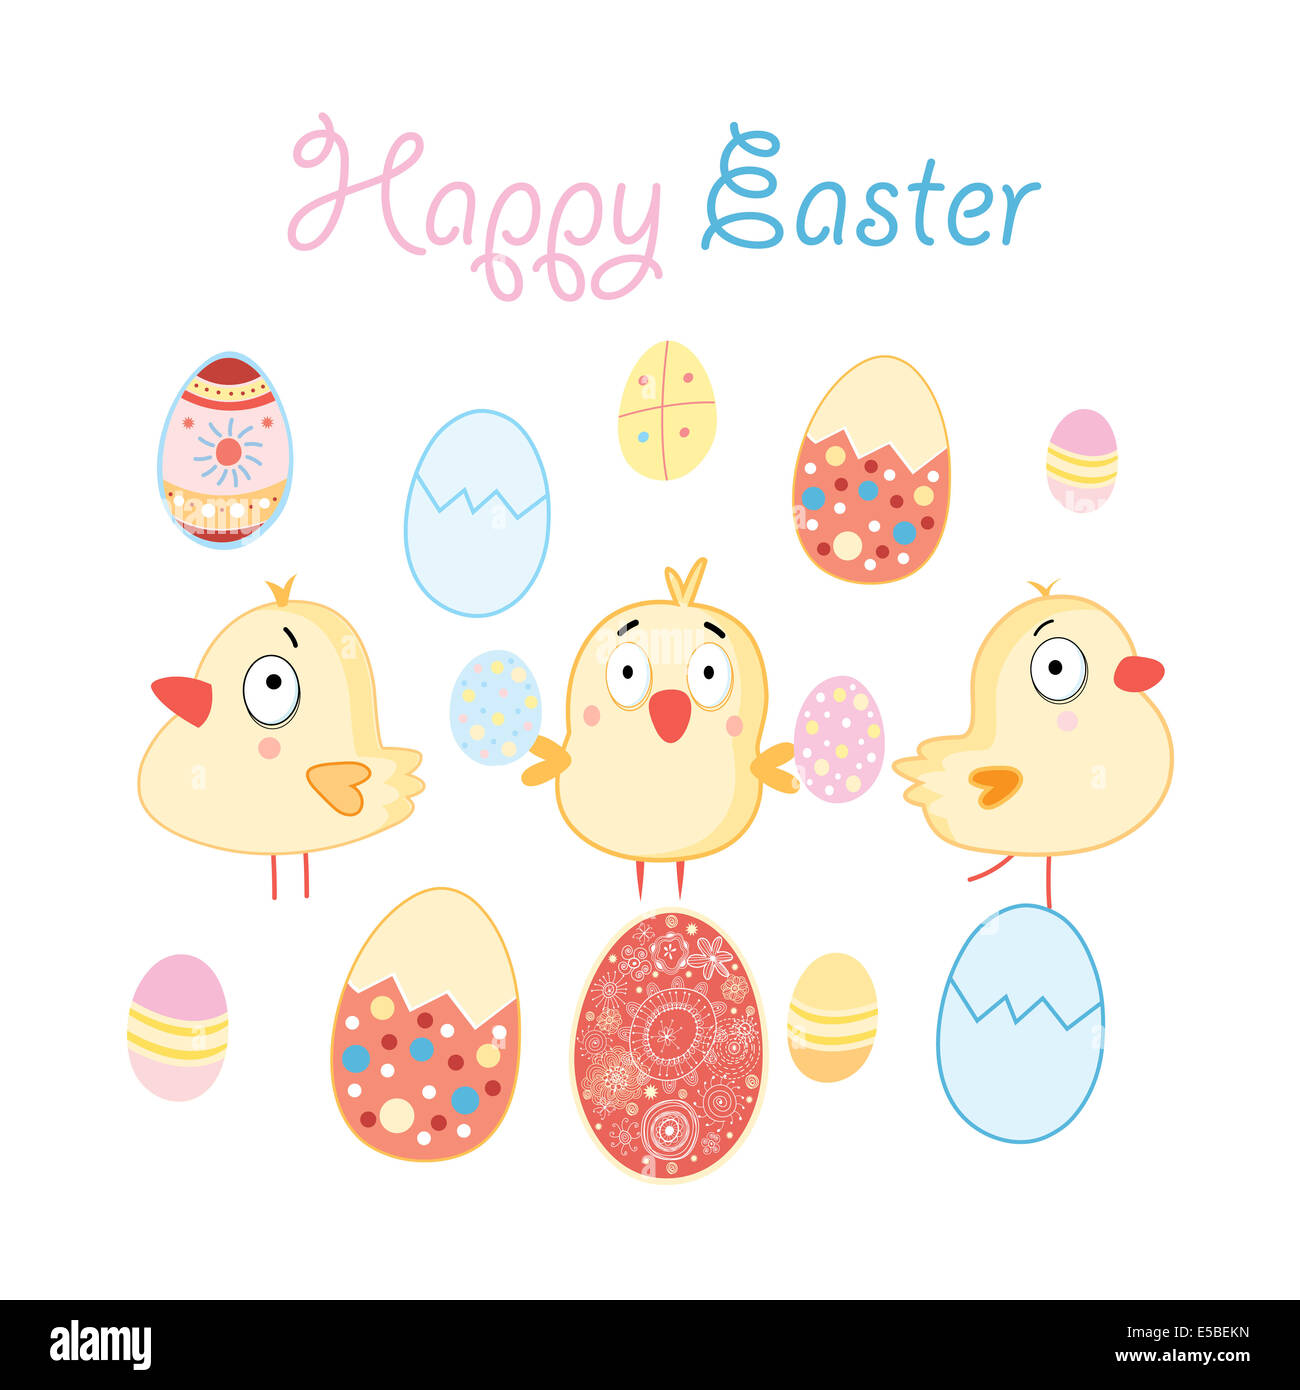 Easter card with funny chickens and eggs - Stock Image